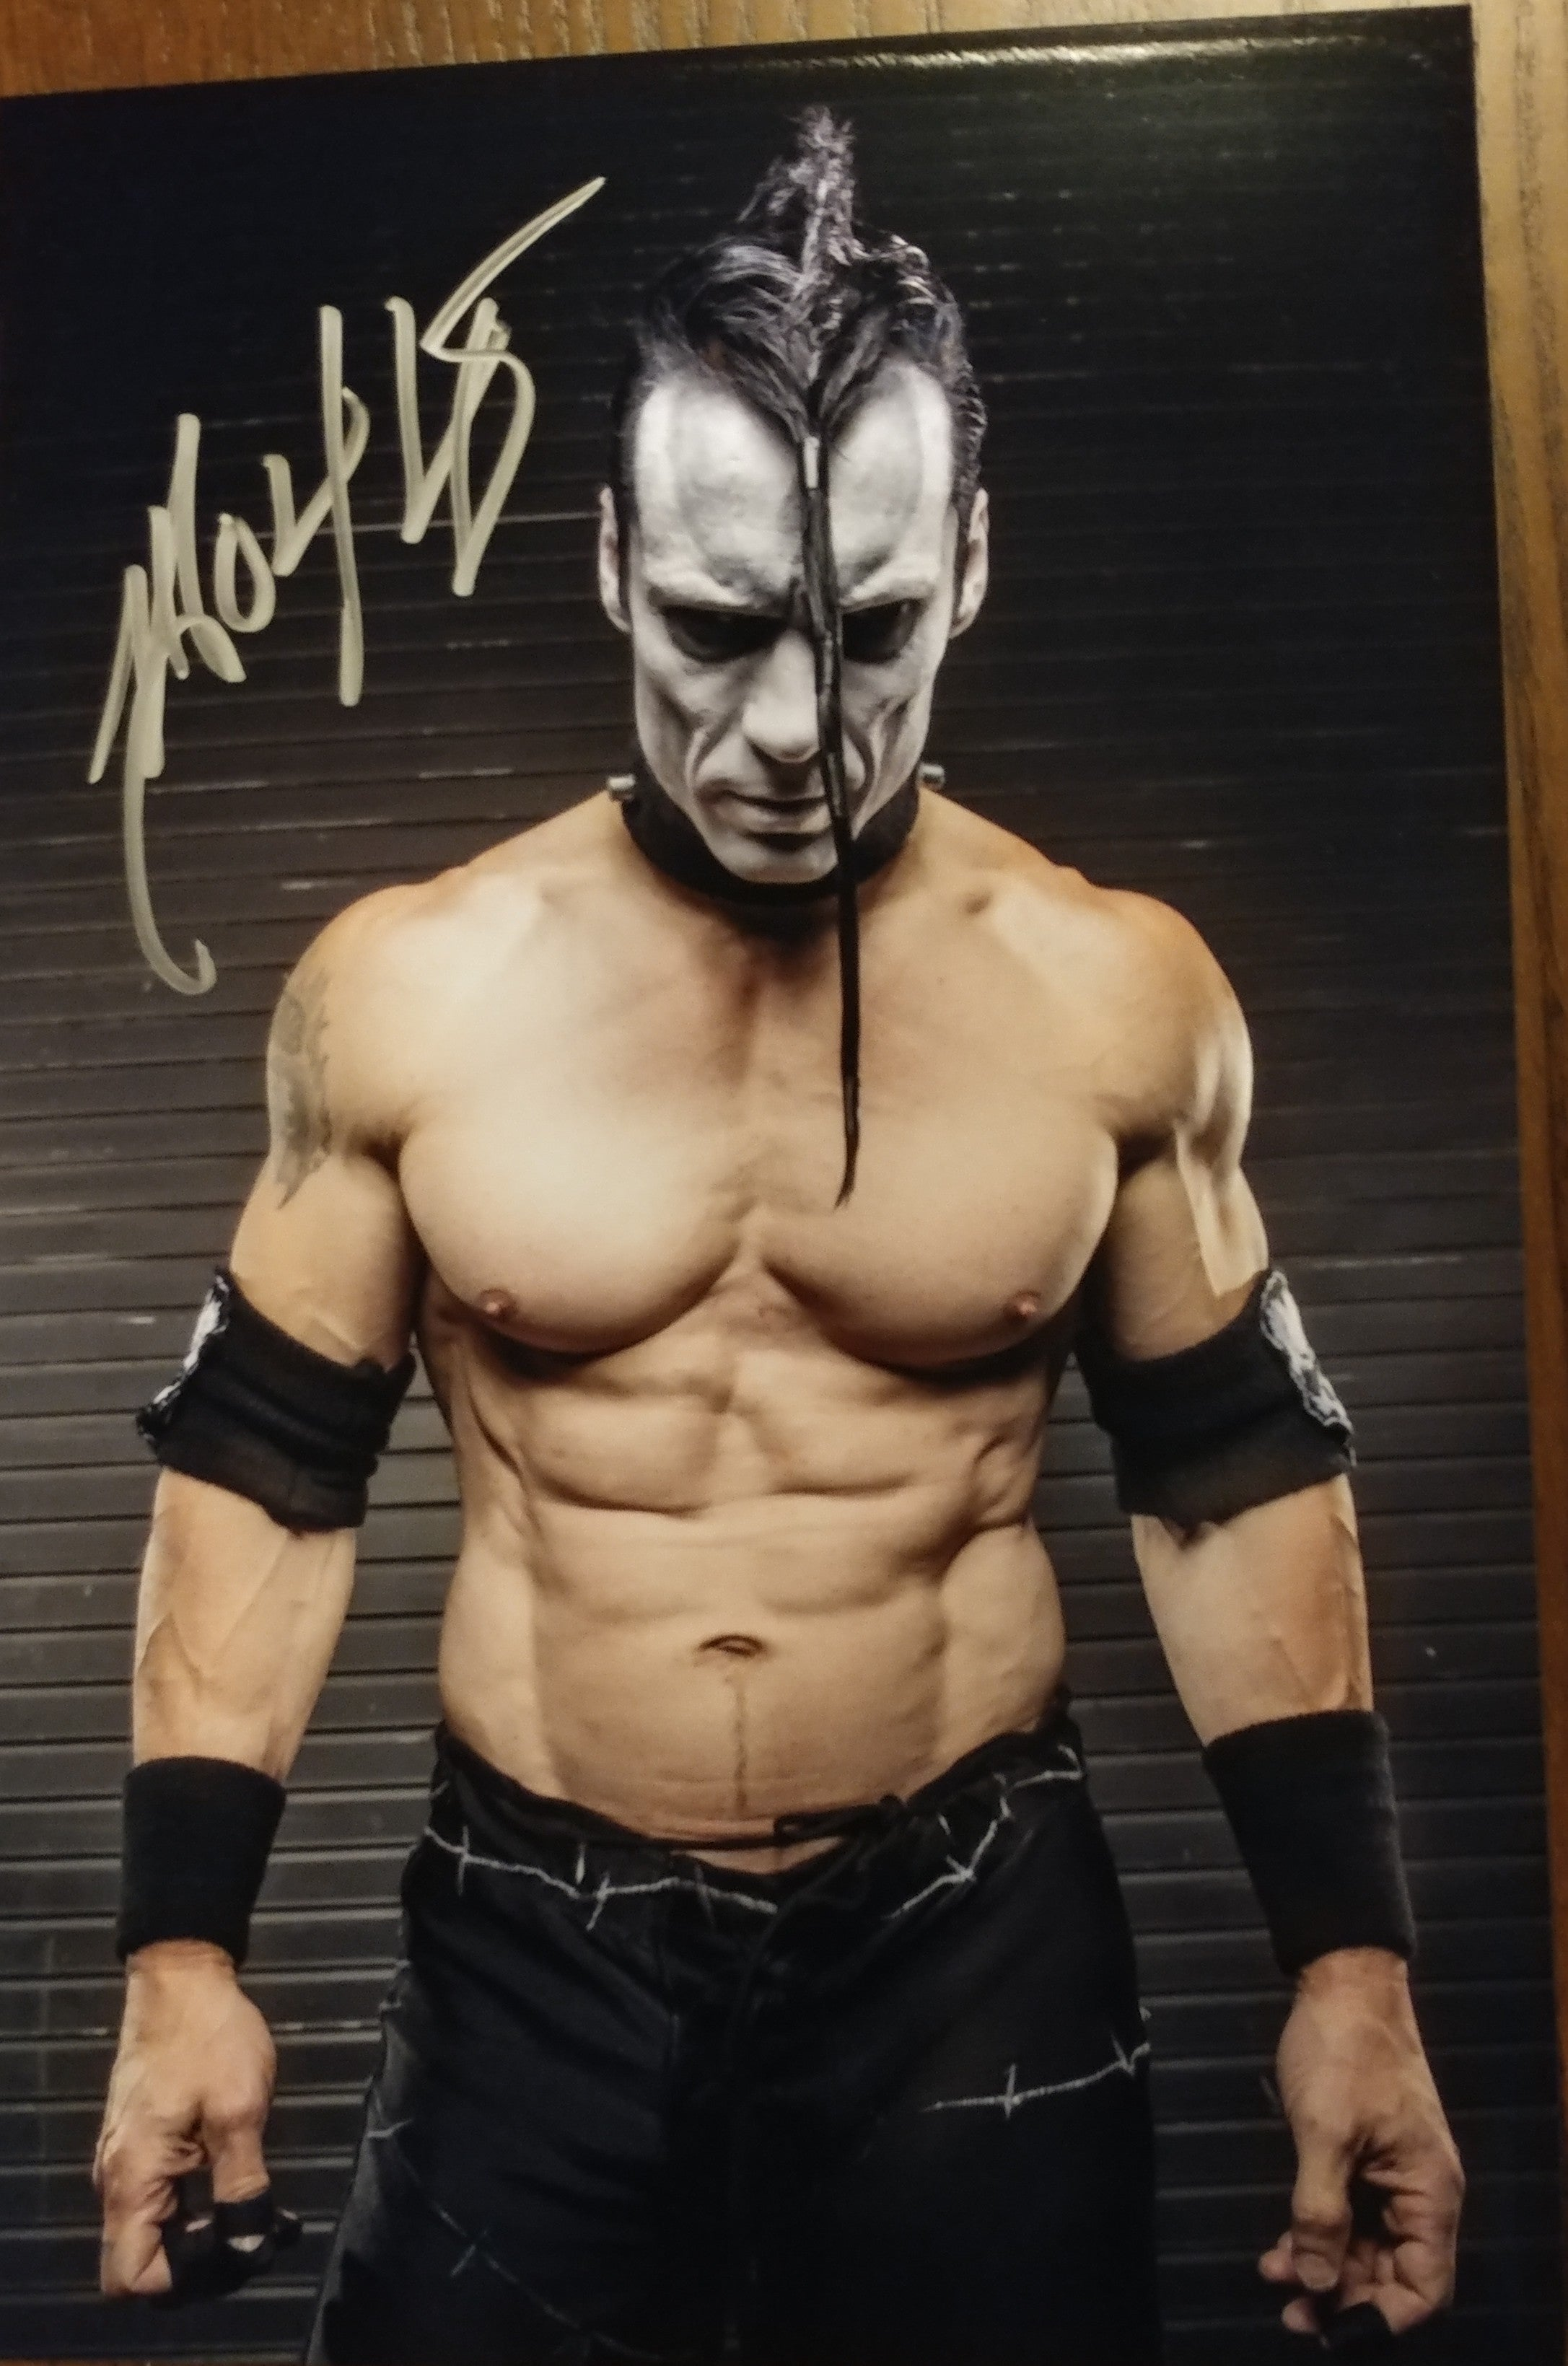 Doyle - Beast signed 8x12 (damaged)